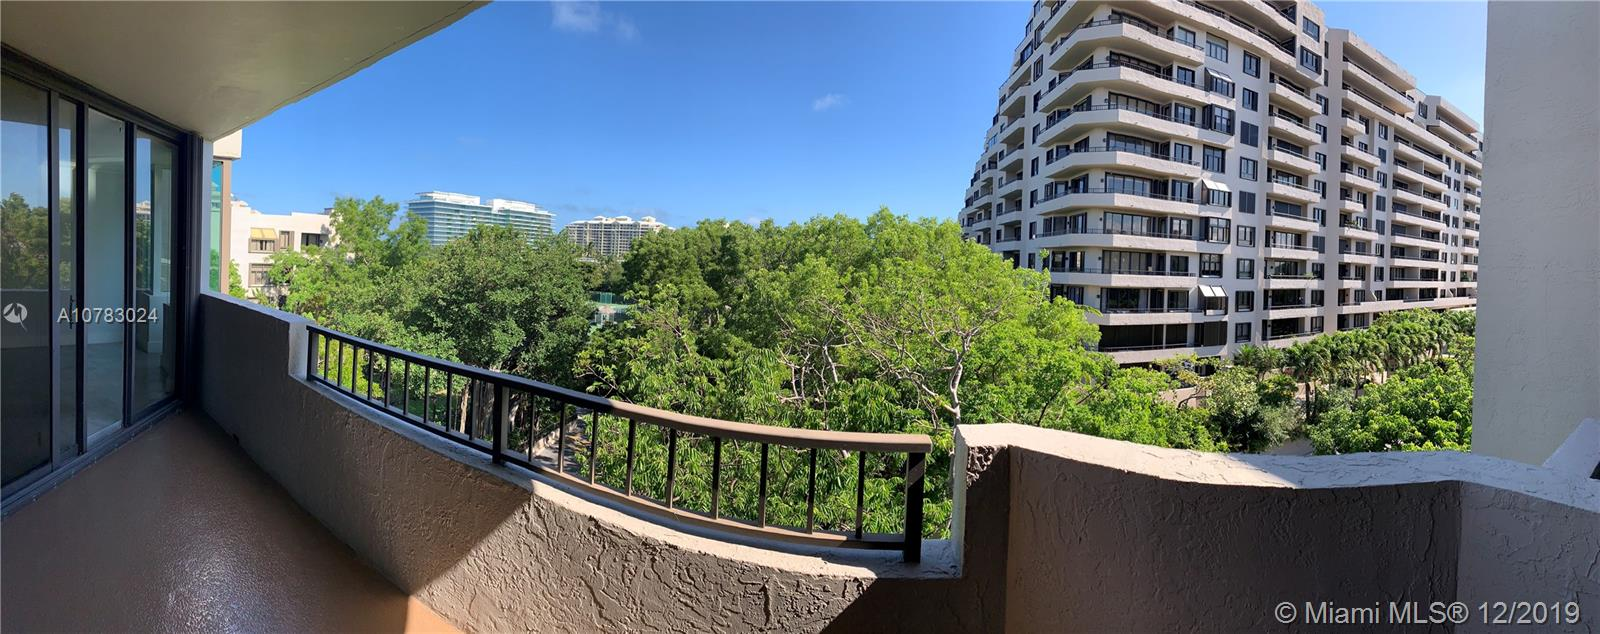 181  Crandon Blvd #404 For Sale A10783024, FL